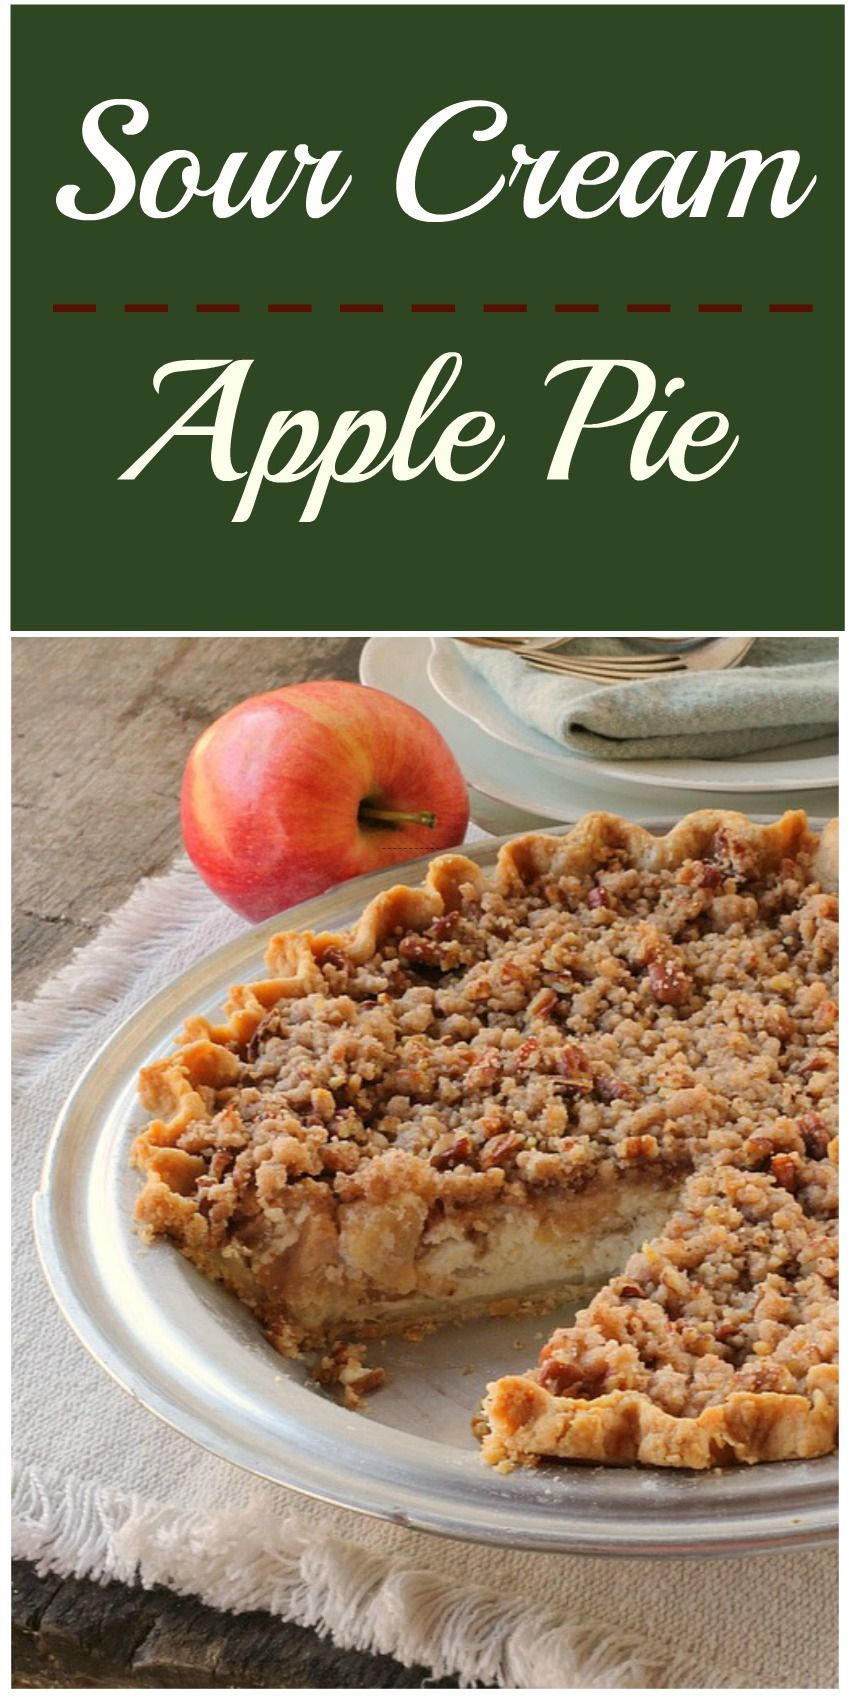 Sour Cream Apple Pie...The creamy filling almost makes you feel like your eating cheesecake, and then you get the crunch from the topping with the cinnamon flavor and it's like…WOW! #applepie